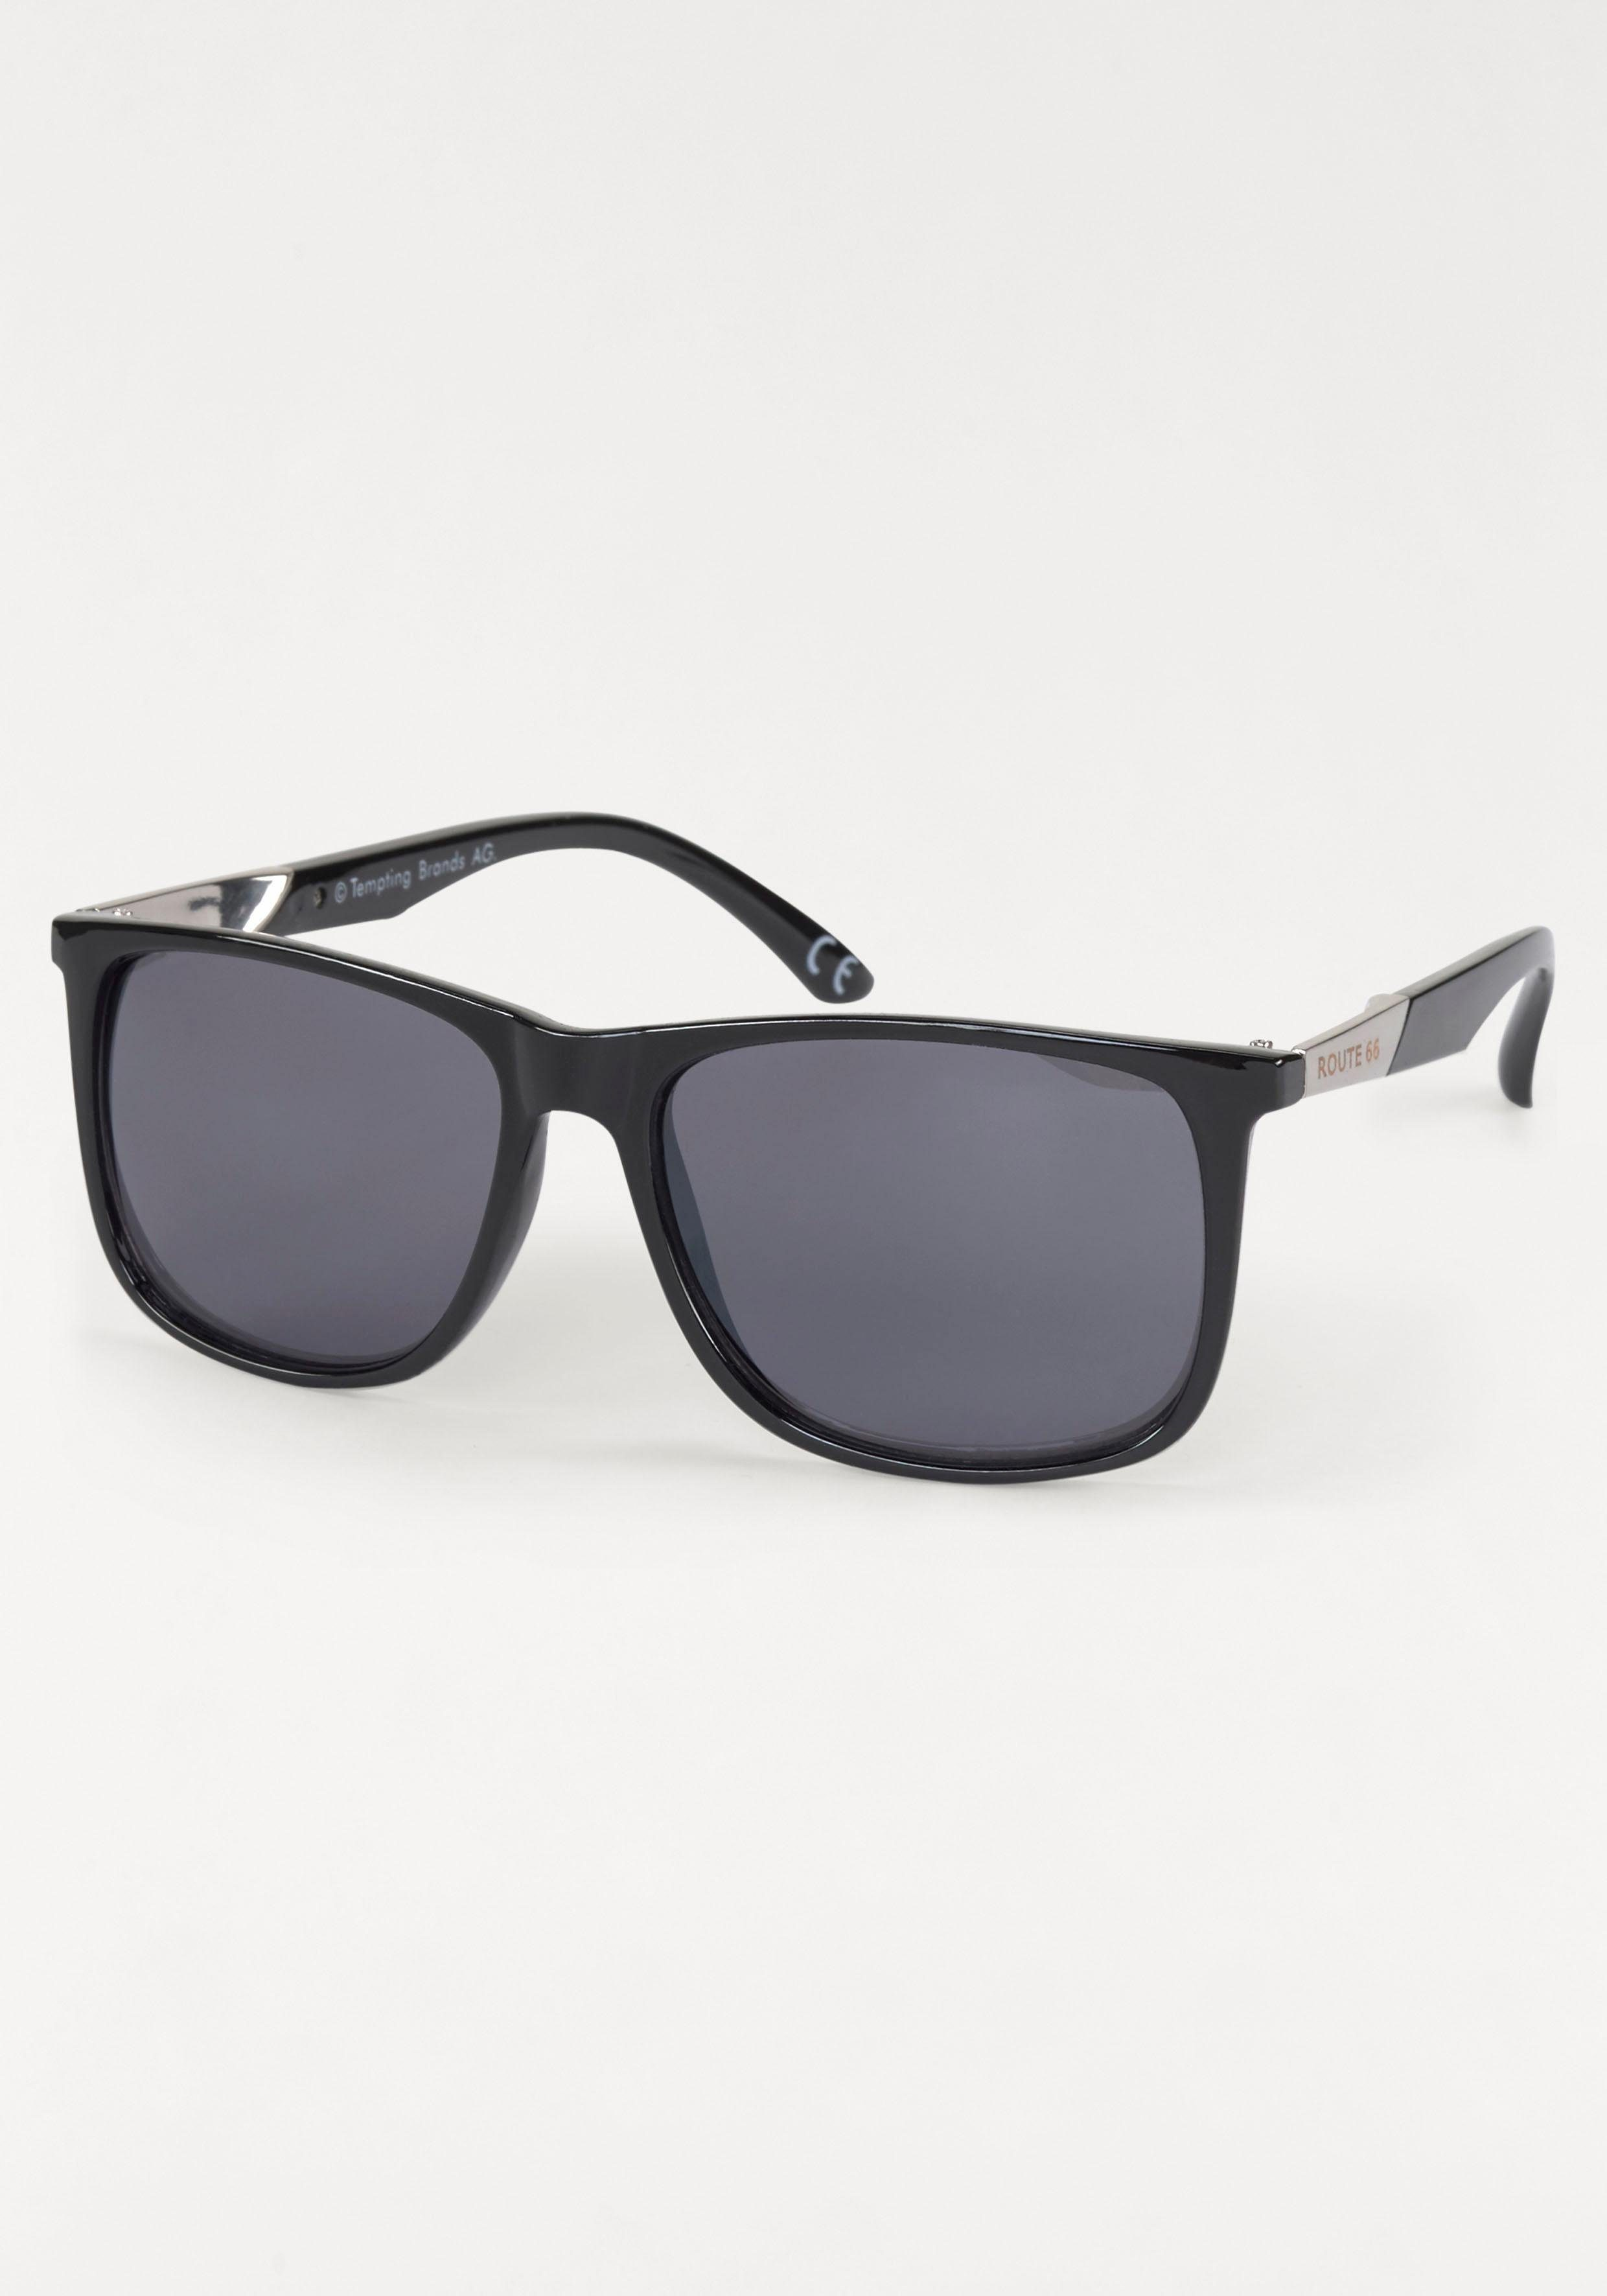 ROUTE 66 Feel the Freedom Eyewear Sonnenbrille, im coolen Design, schwarz, schwarz